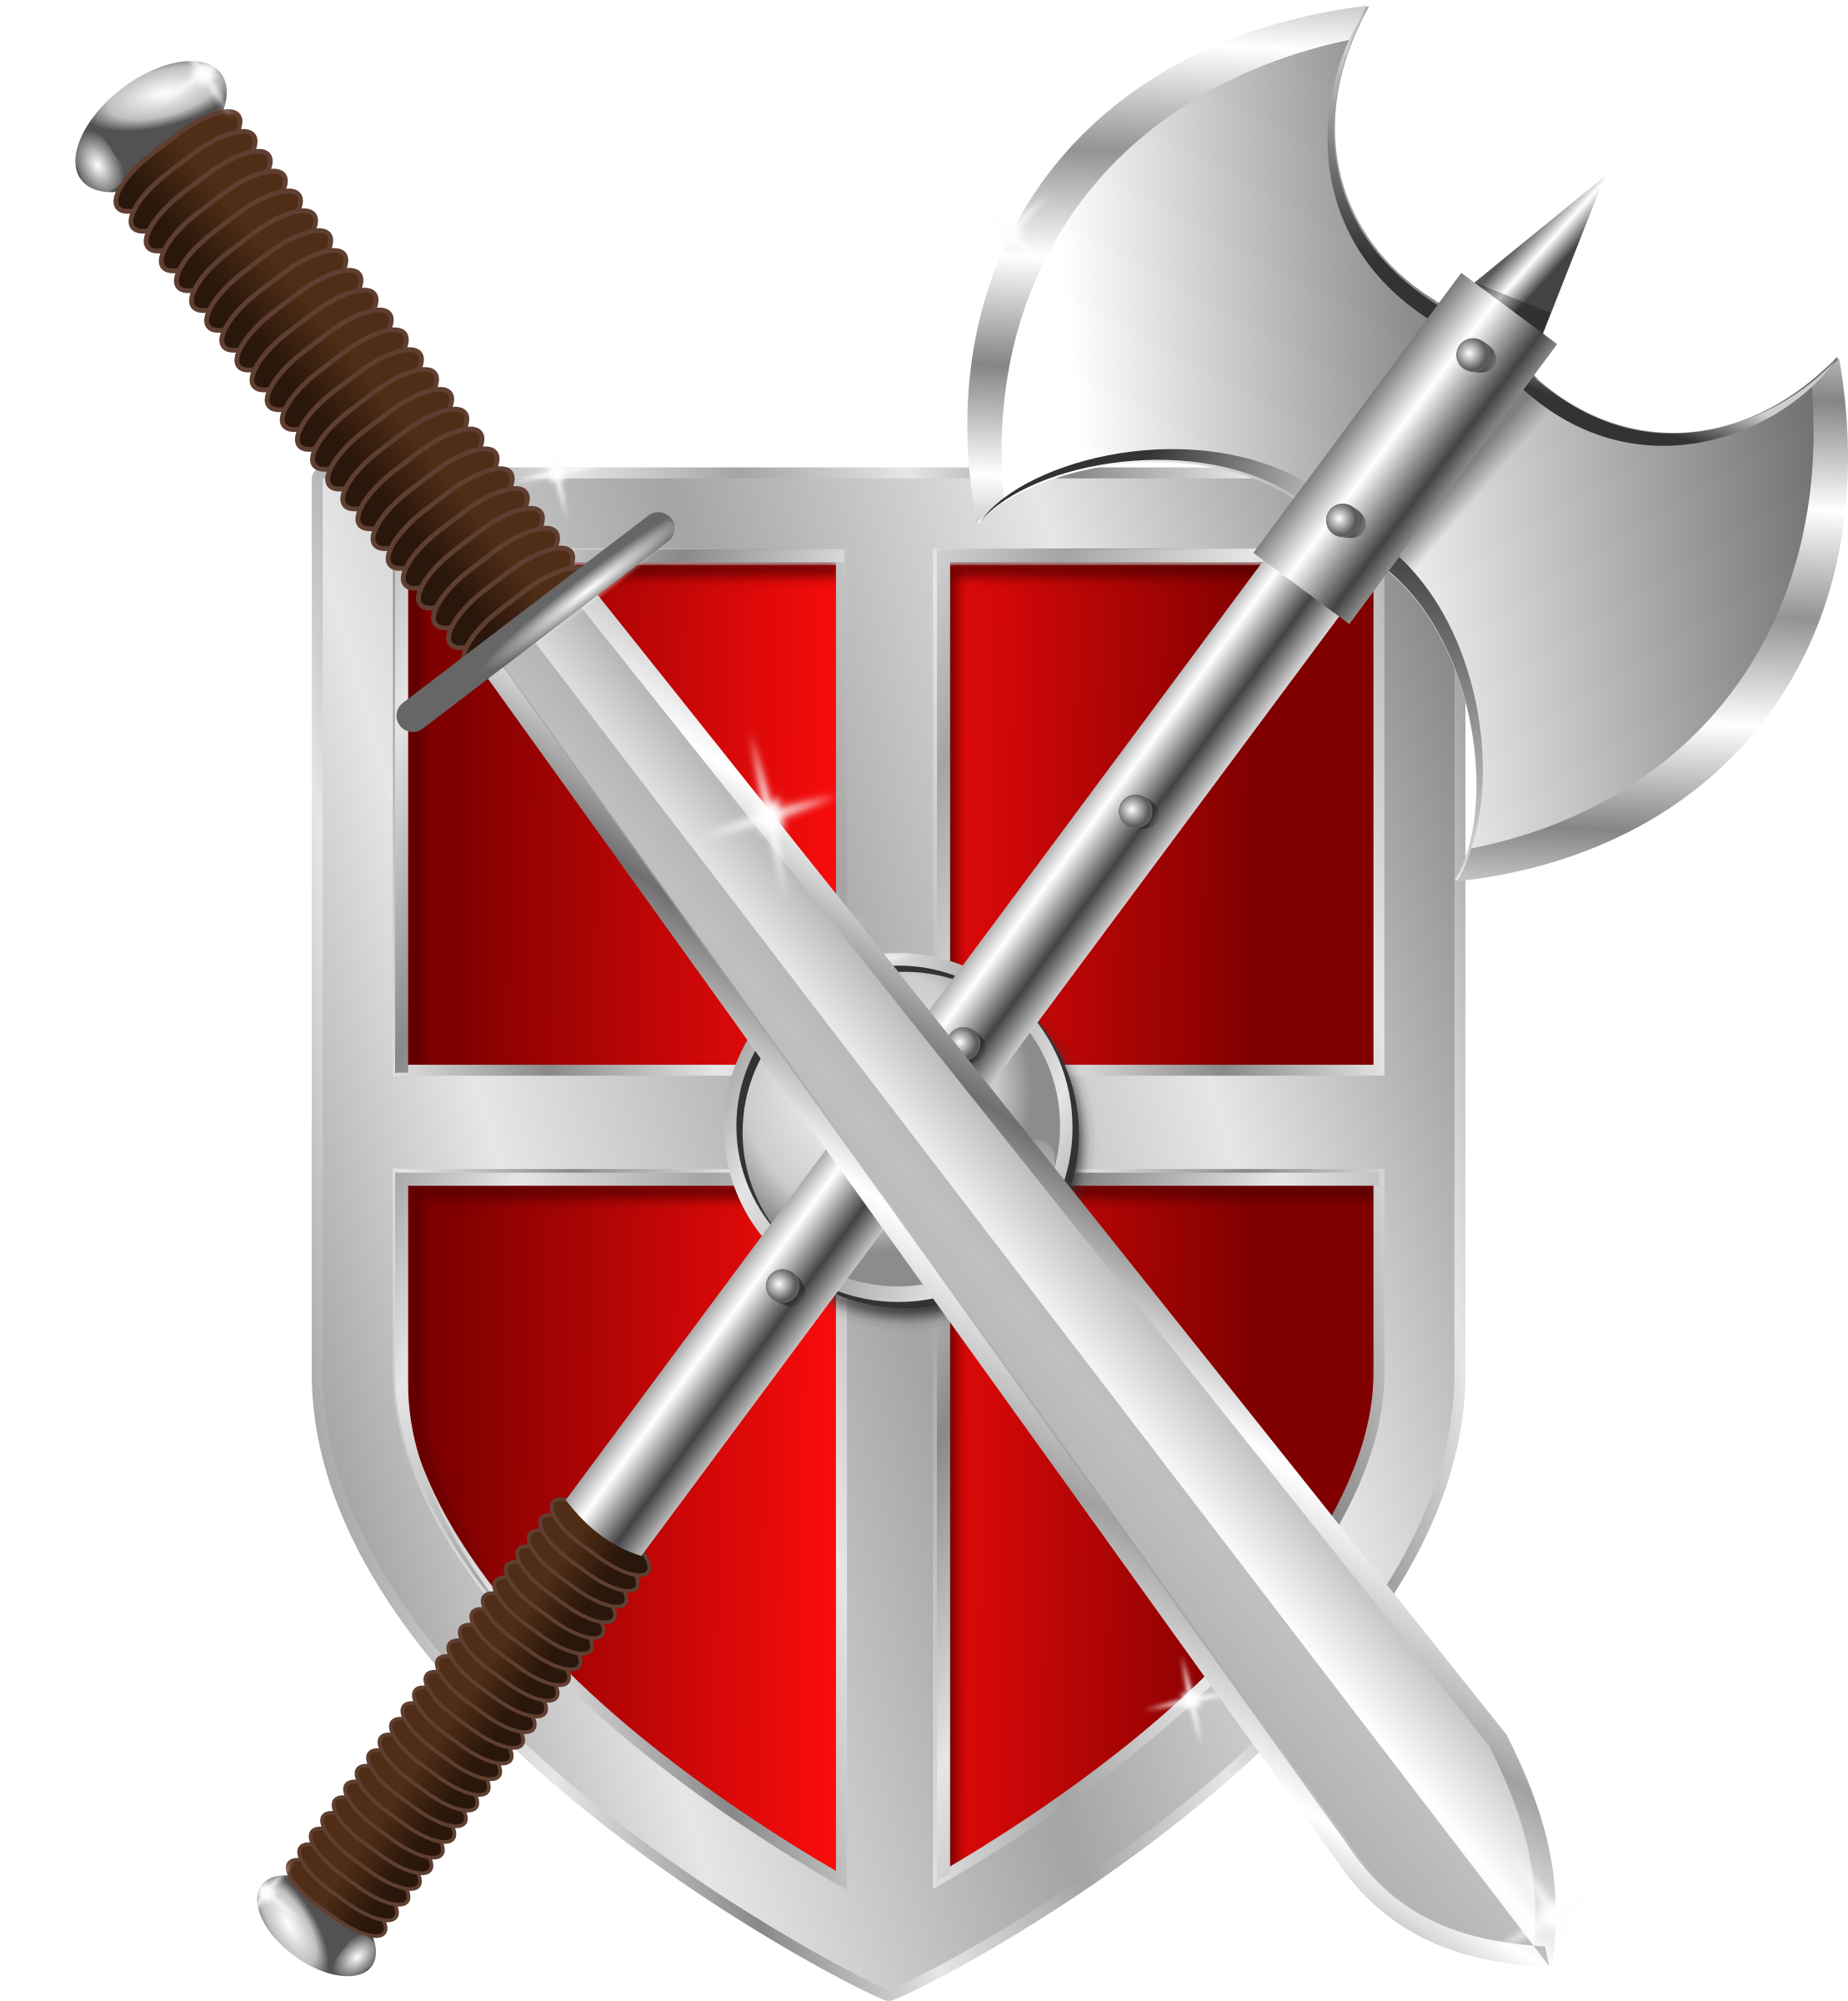 Clipart shield metallic. Sword battleaxe big image